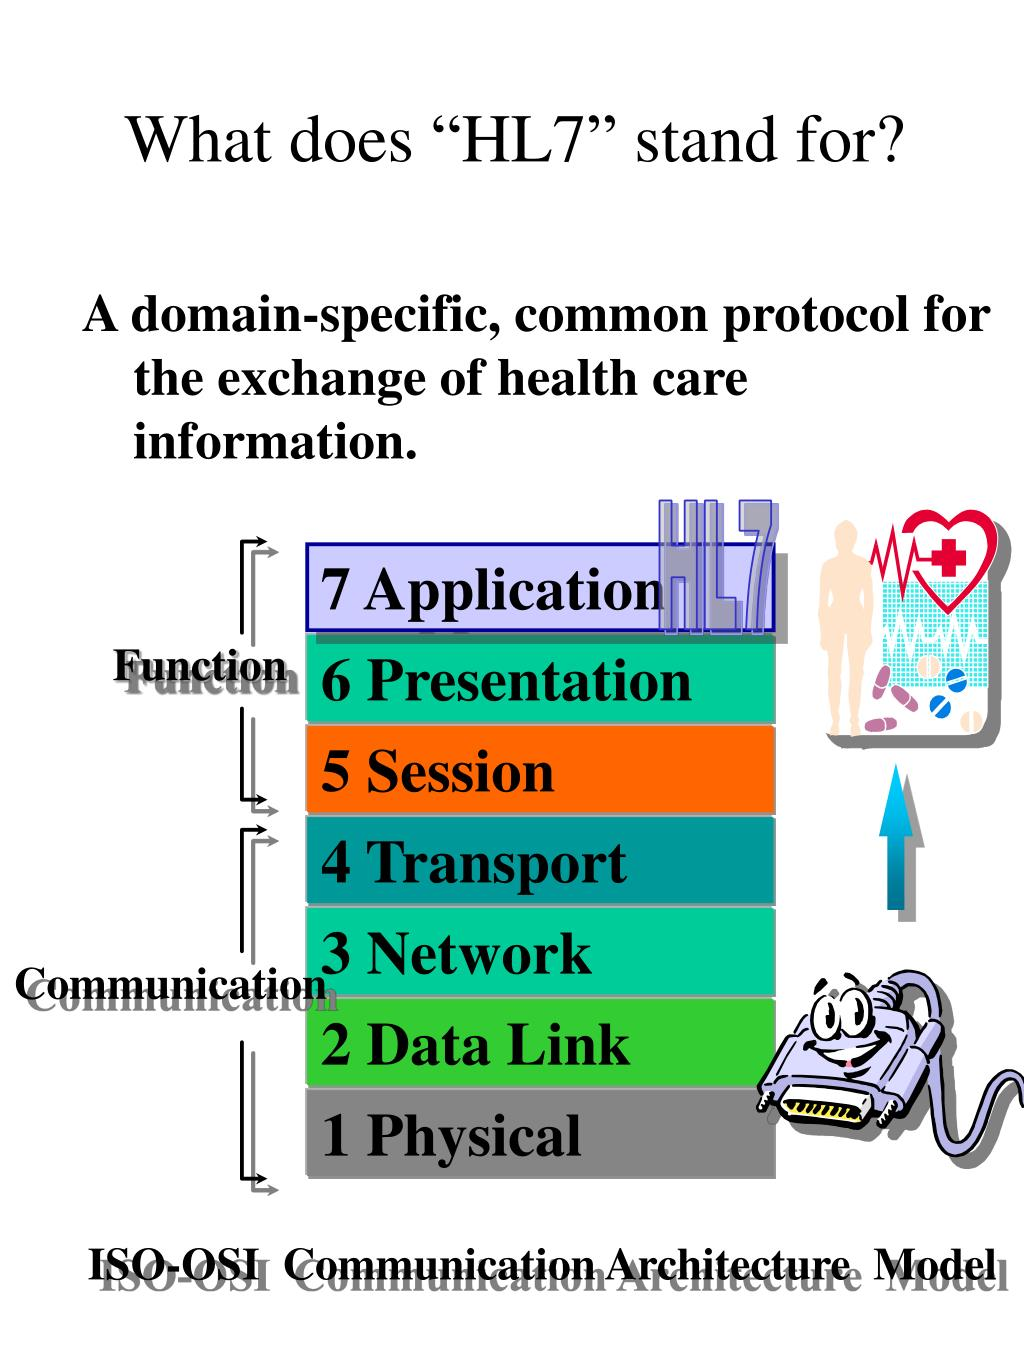 A domain-specific, common protocol for the exchange of health care information.